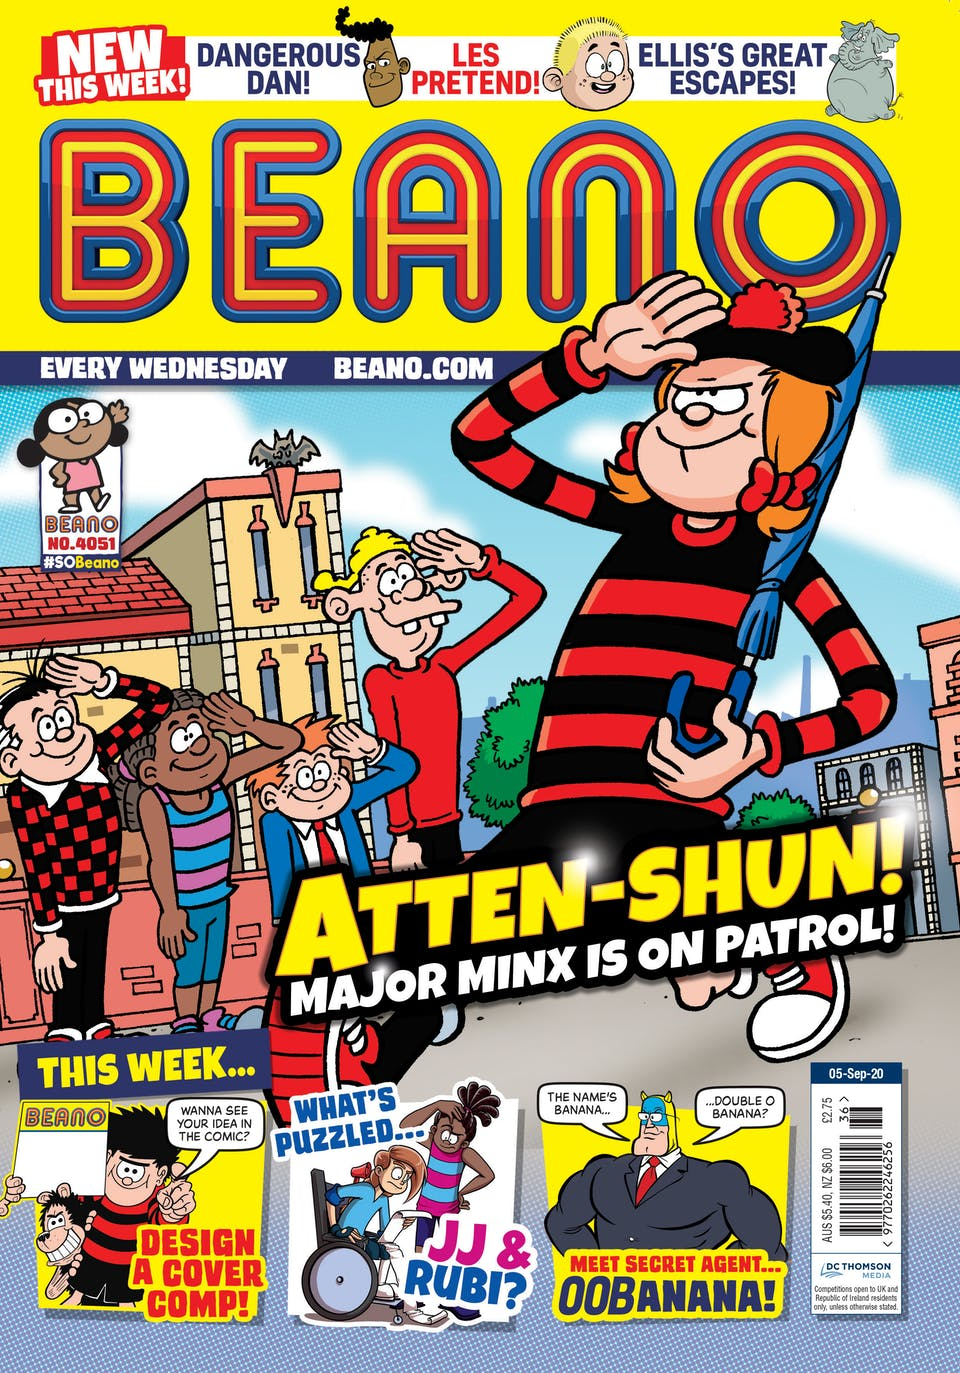 Inside Beano no.4052  - What Does the Future Hold for Dennis & Gnasher?